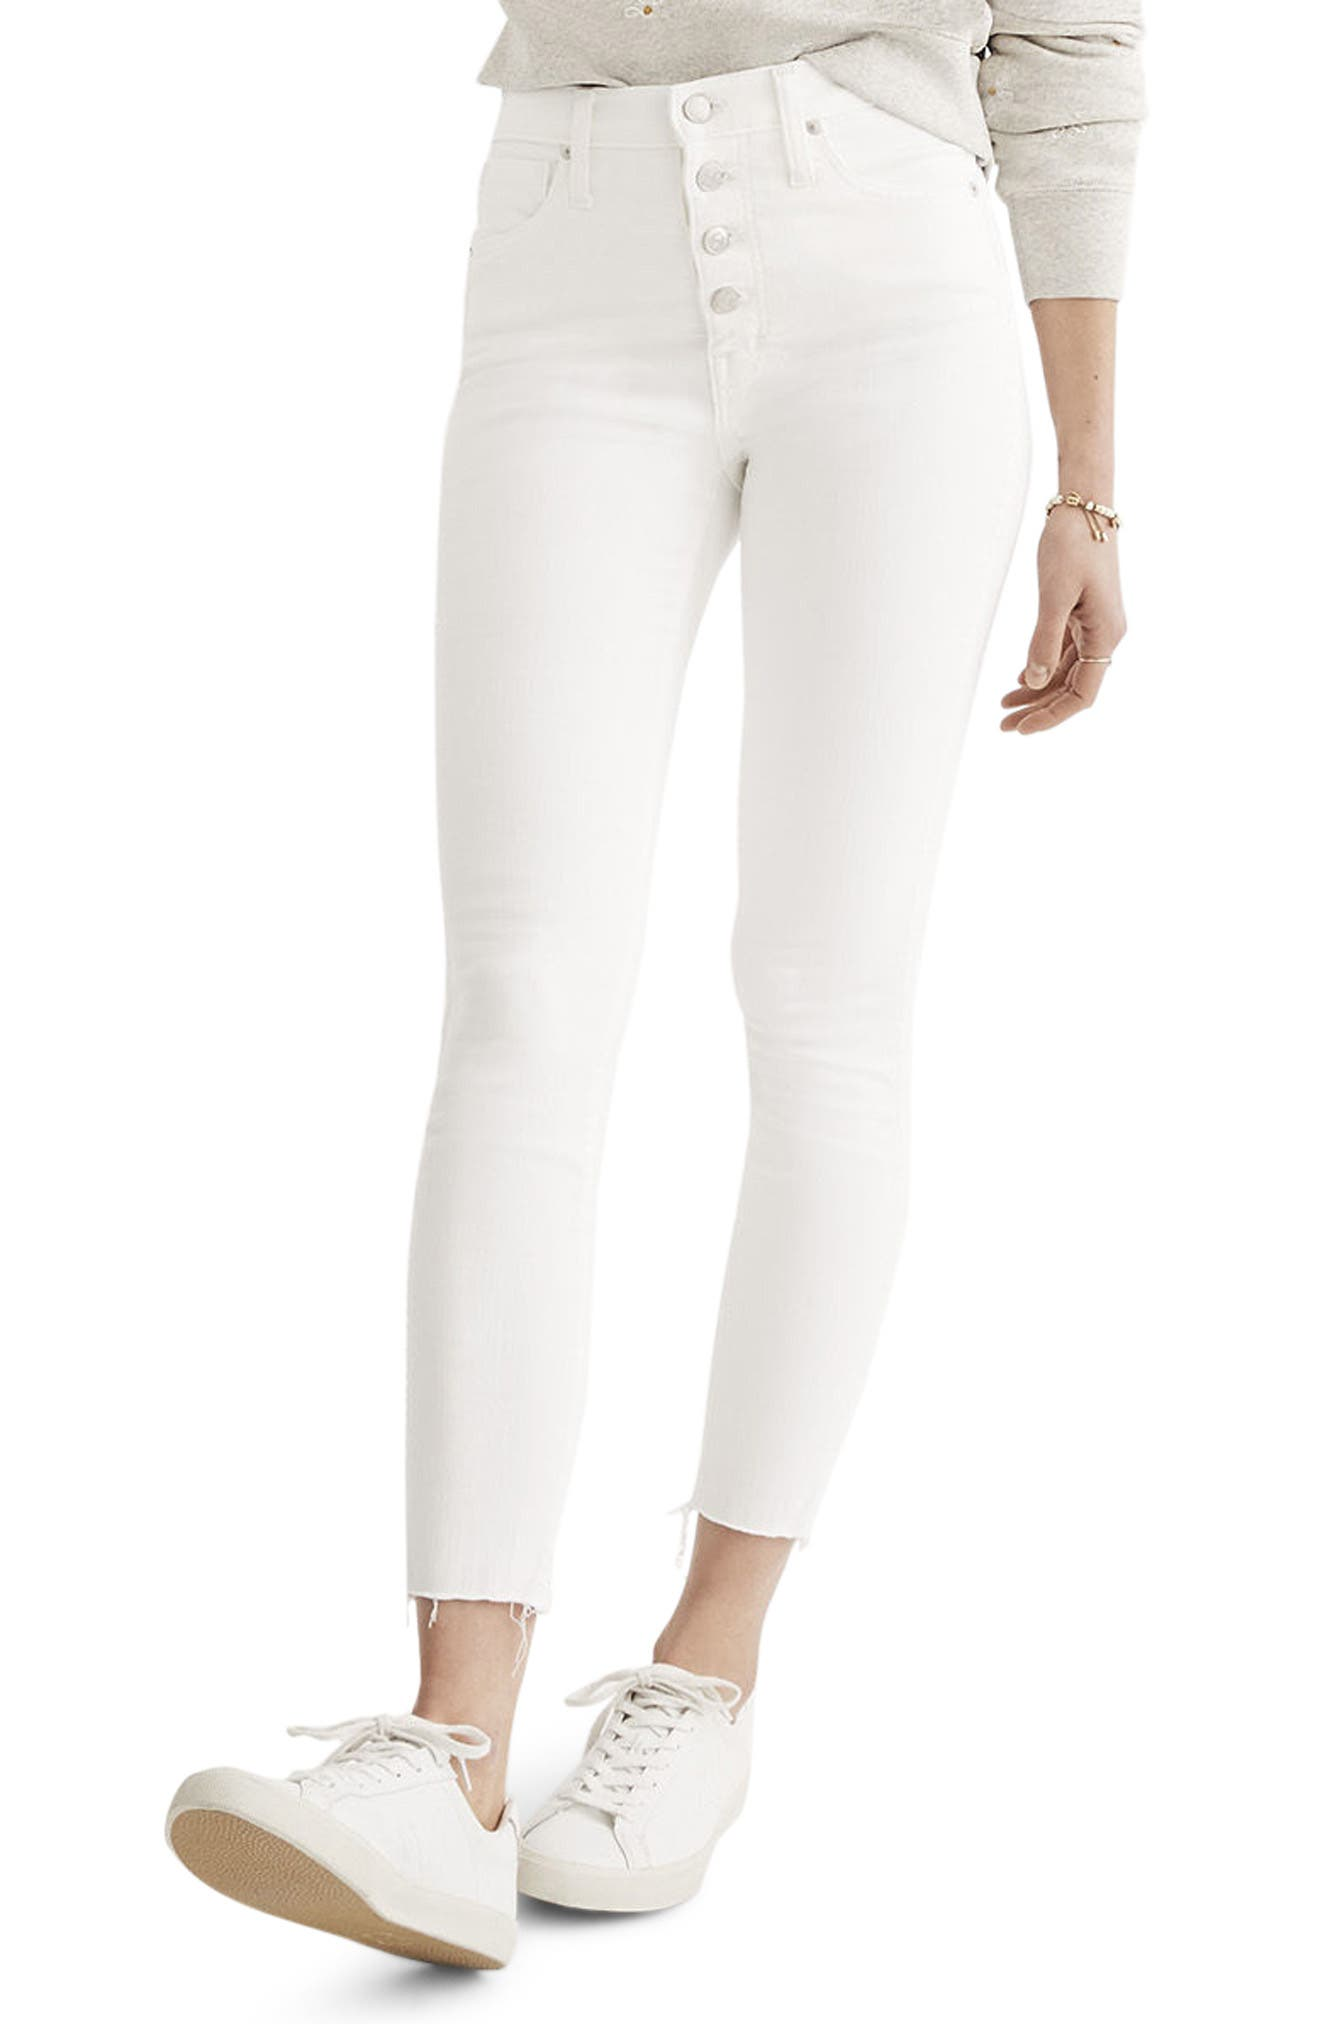 10-Inch Button High Waist Crop Skinny Jeans,                             Main thumbnail 1, color,                             PURE WHITE